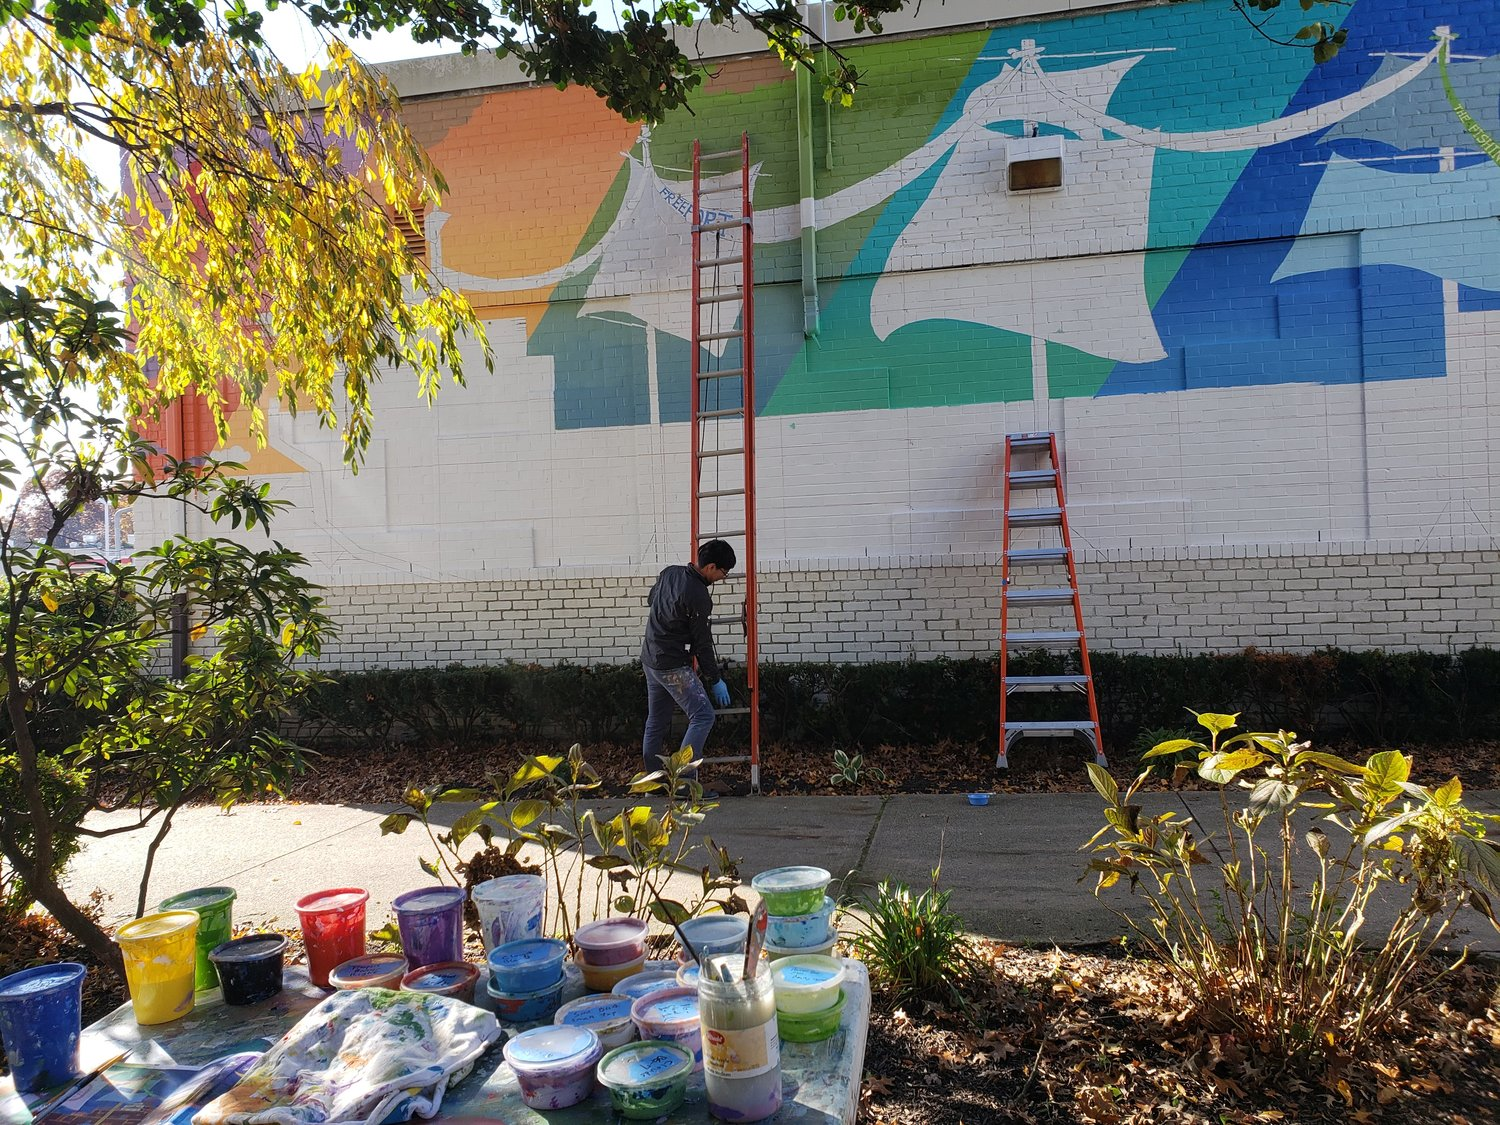 Ji Yong Kim, an artist and adjunct professor at Nassau Community College and Raritan Valley Community College in New Jersey, was selected by the Long Island Arts Council at Freeport to paint the mural. It took two months to complete.